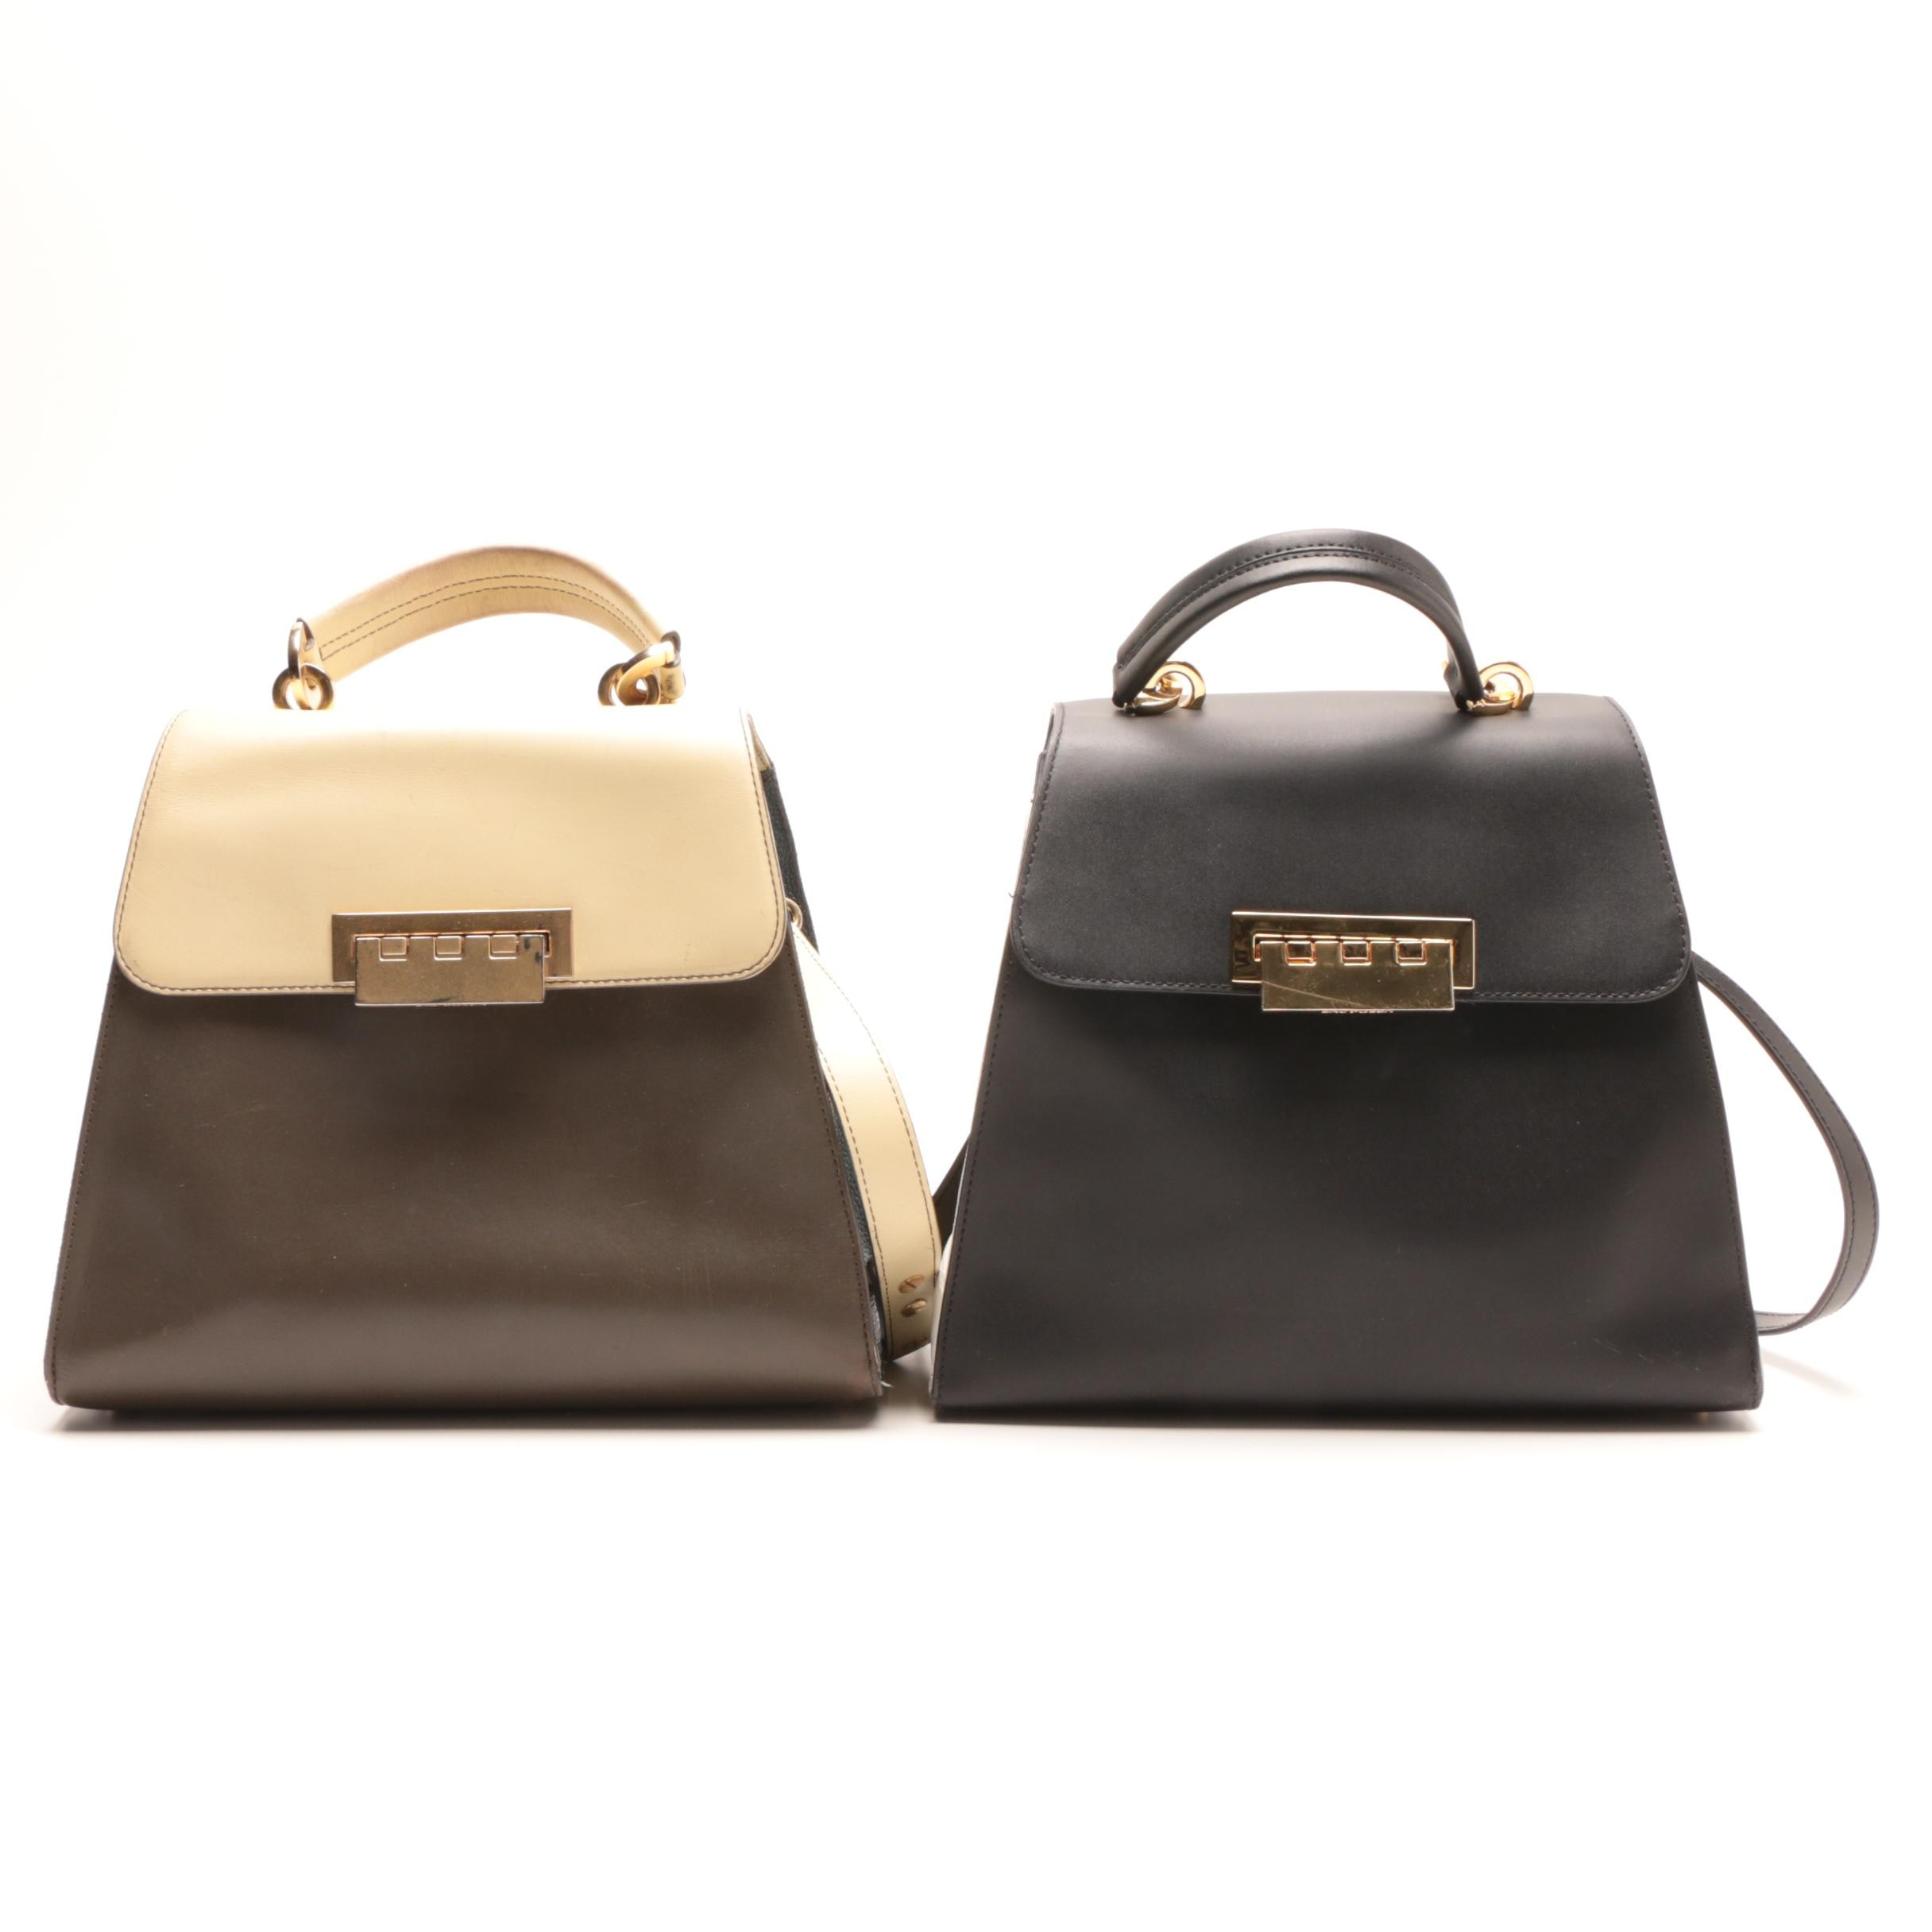 ZAC Zac Posen Eartha Iconic Leather Satchels